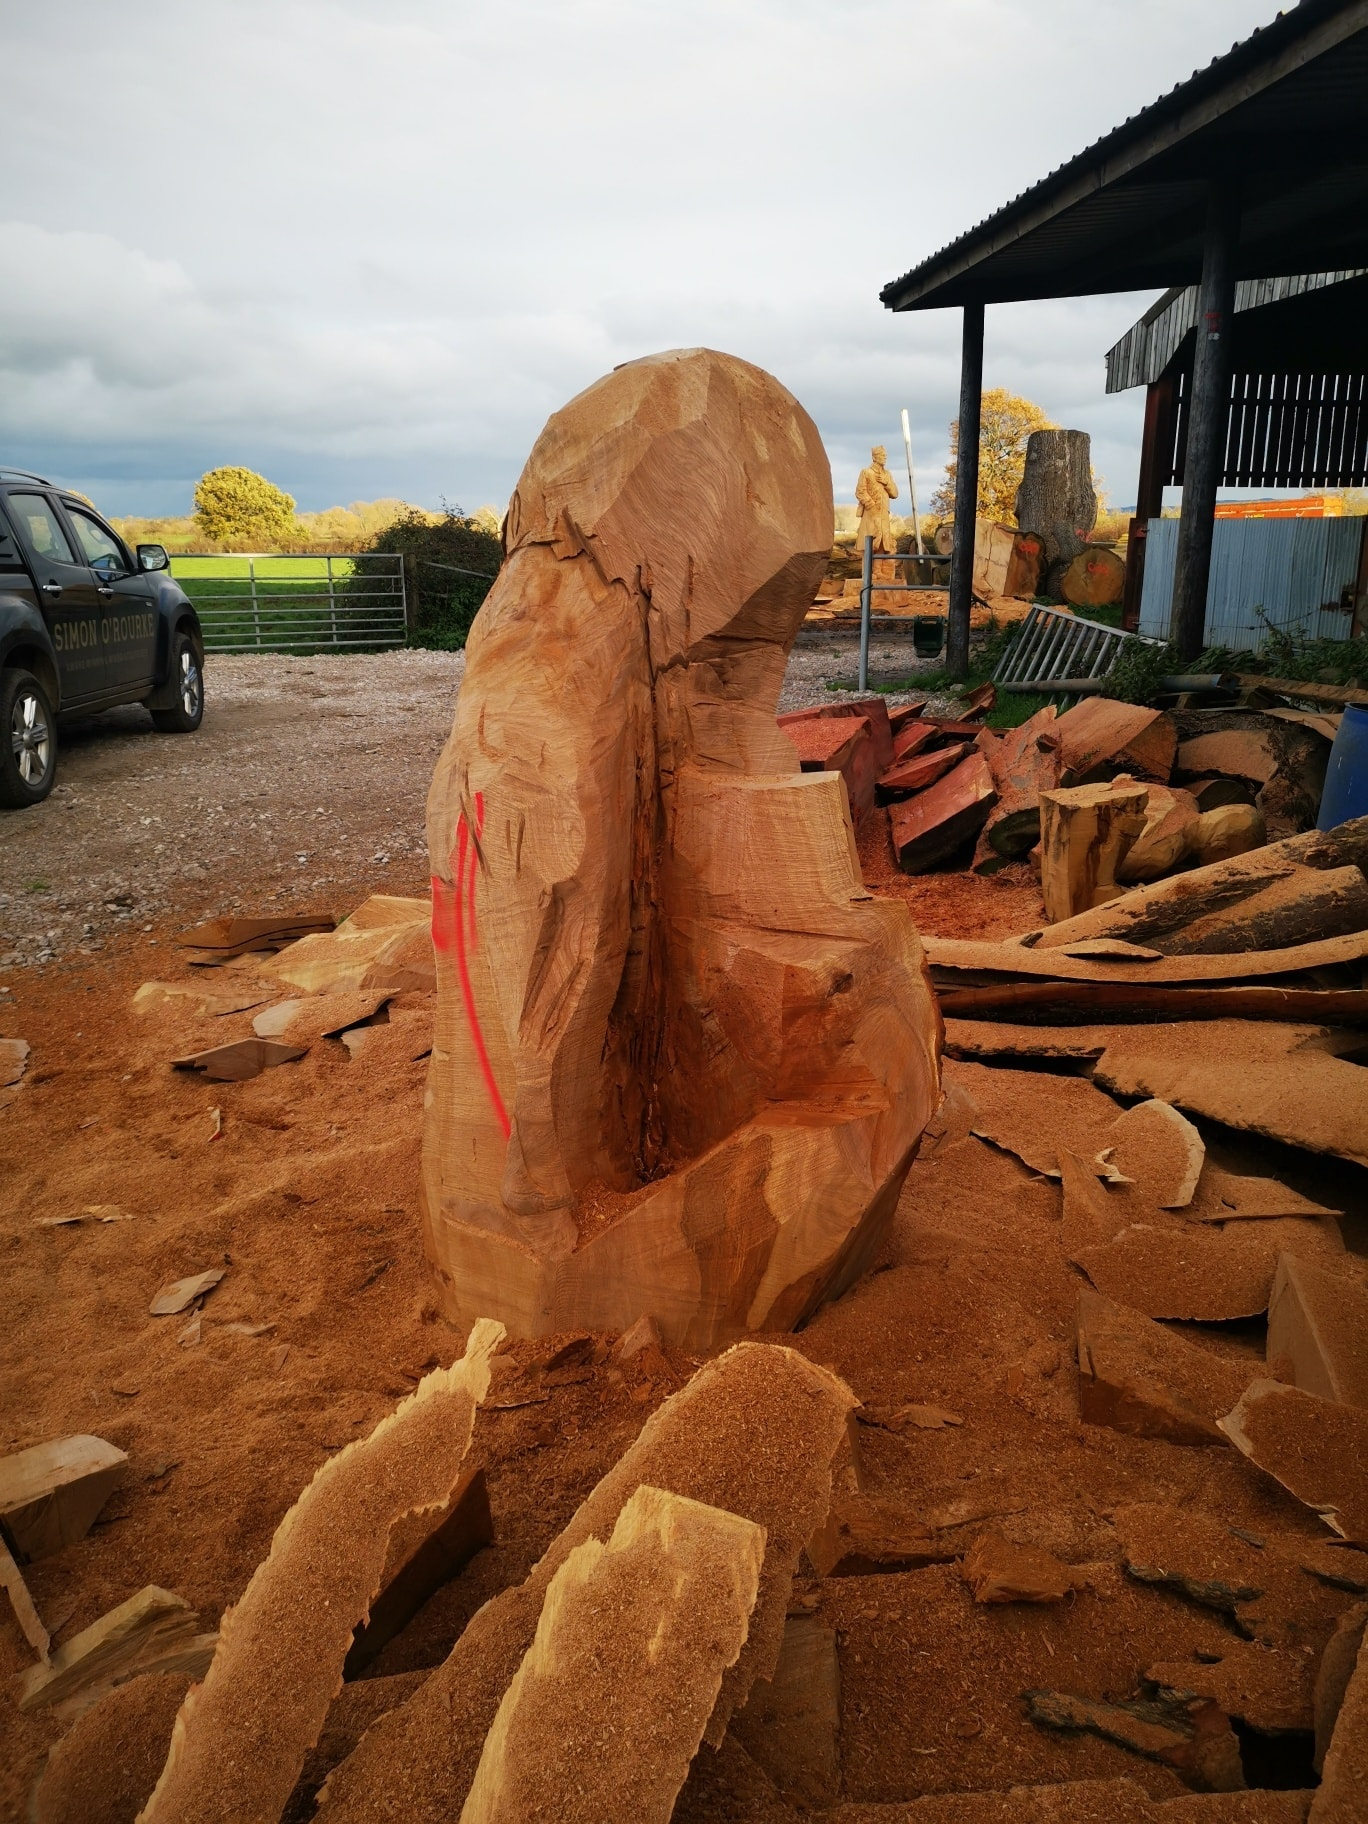 an abandoned unfinished wood sculpture of a lion